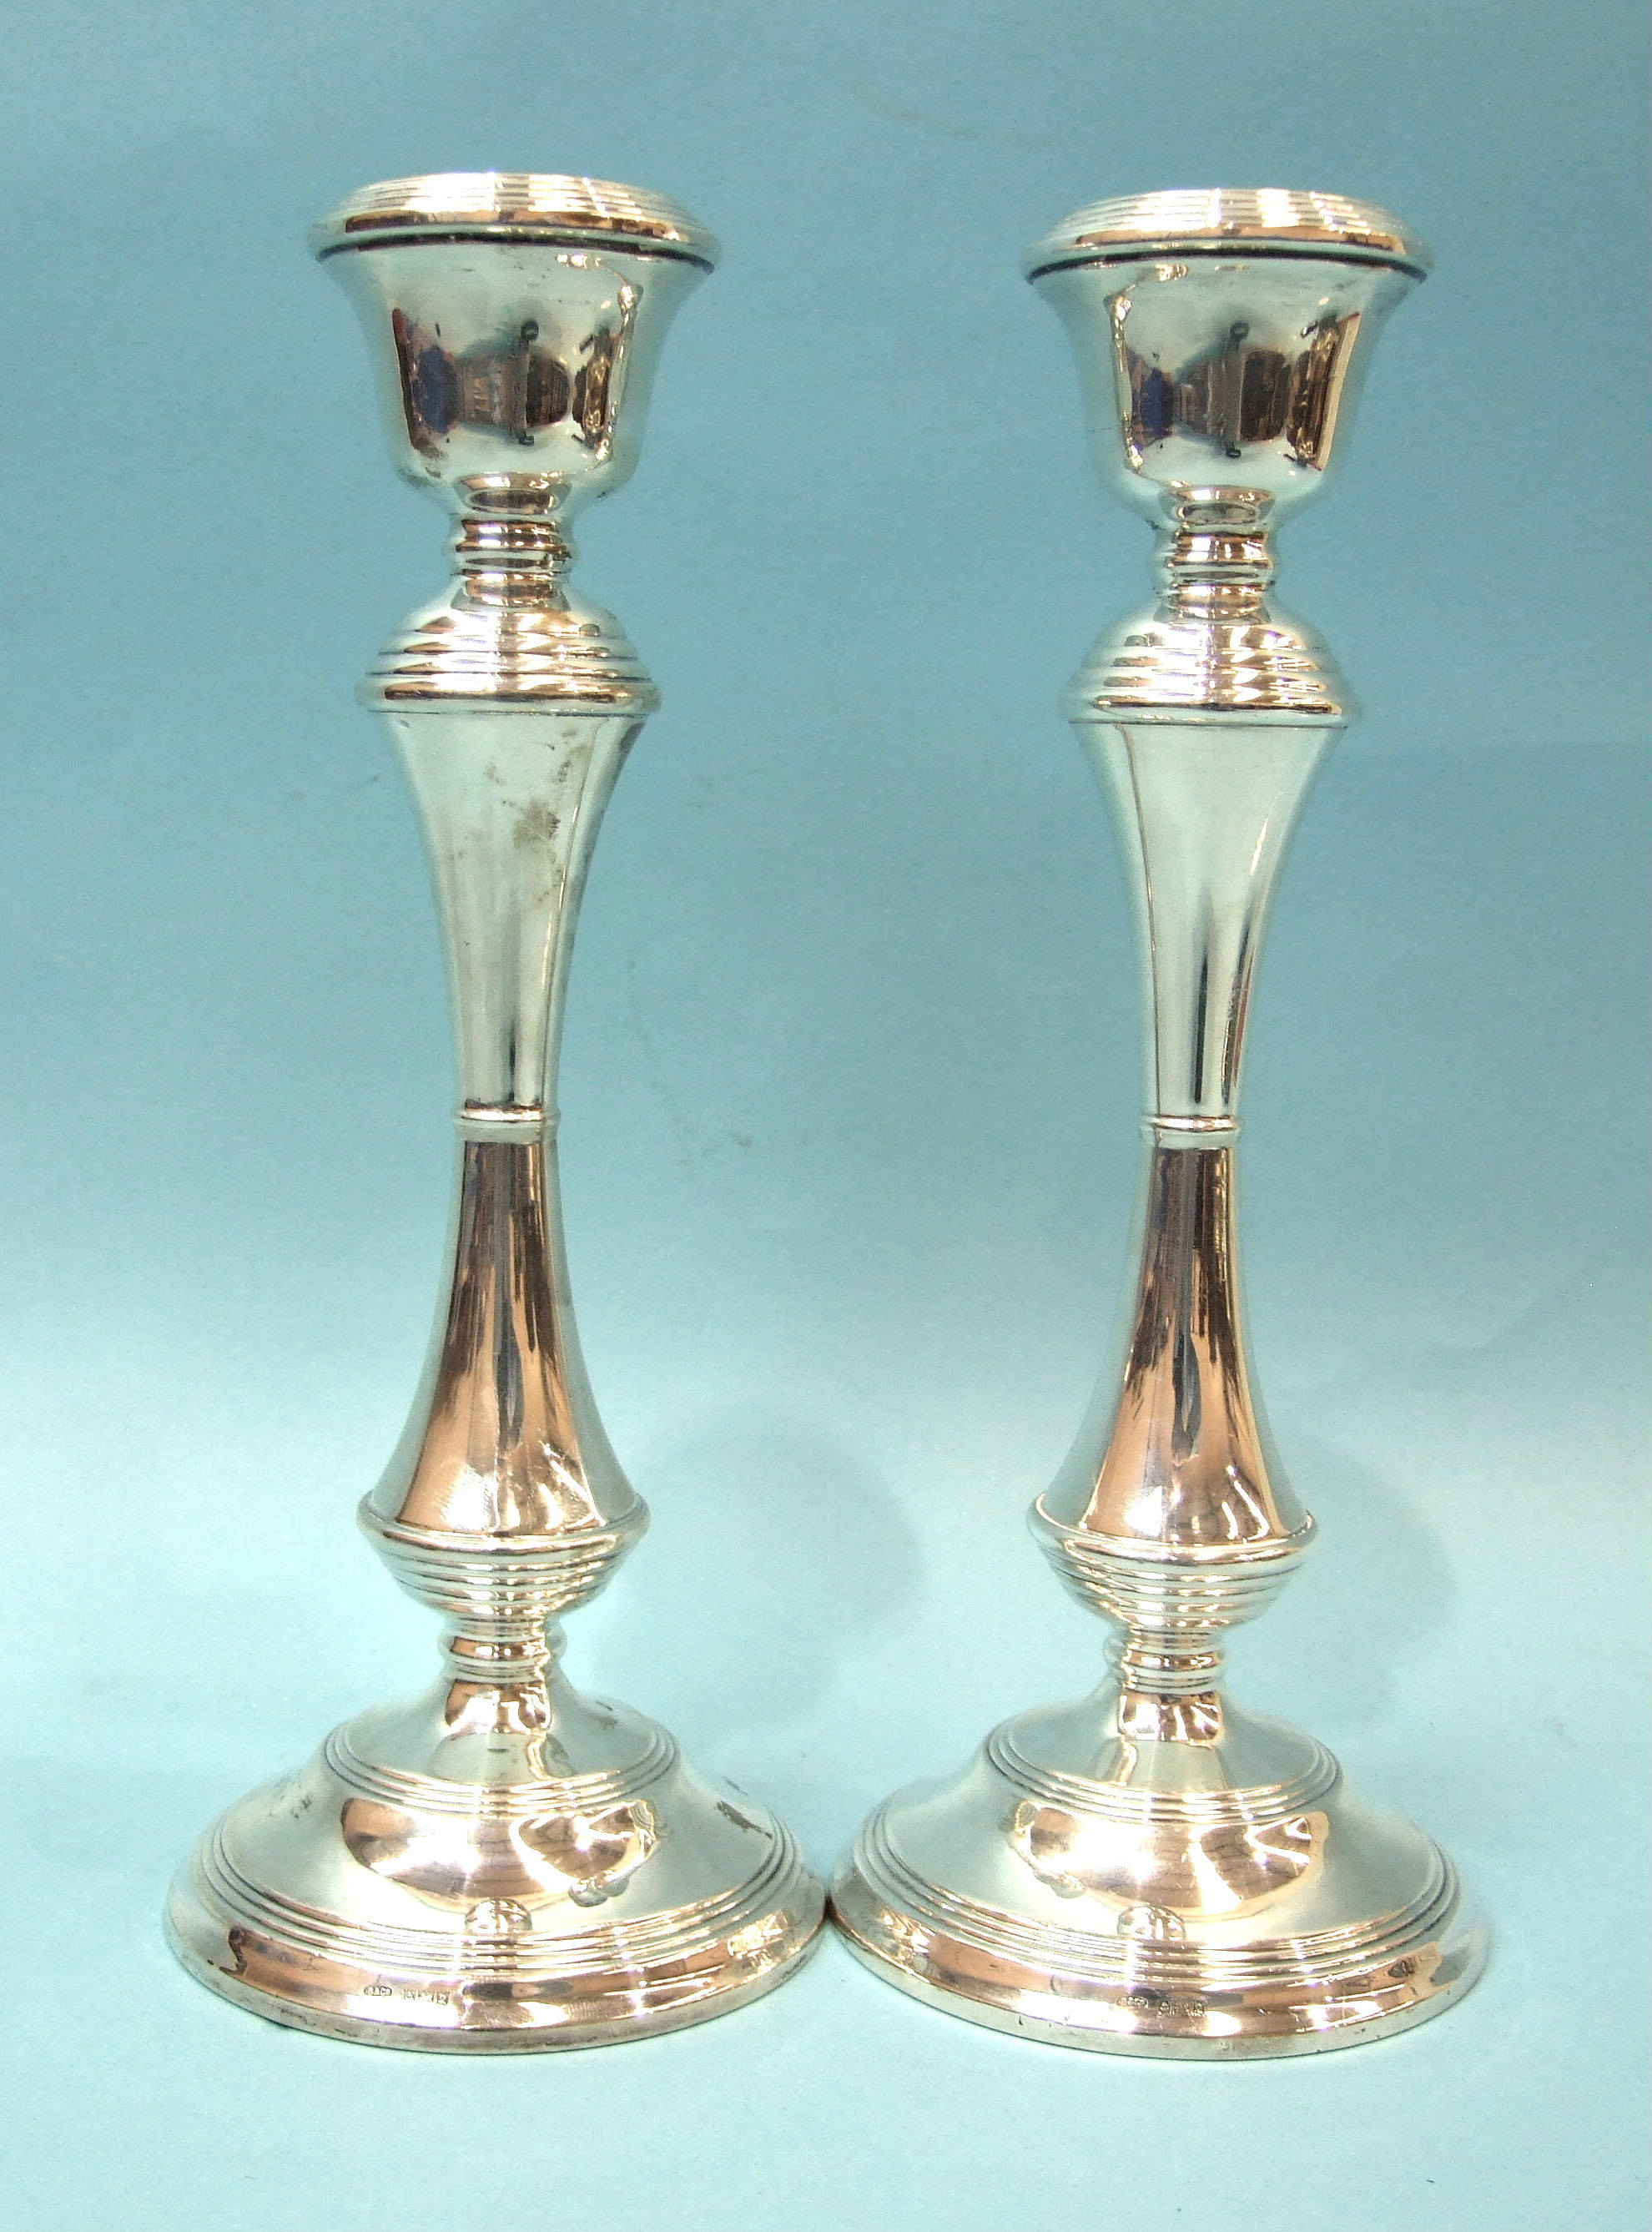 Lot 325 - A pair of modern silver candlesticks with knopped stems and round bases, maker WI Broadway & Co,